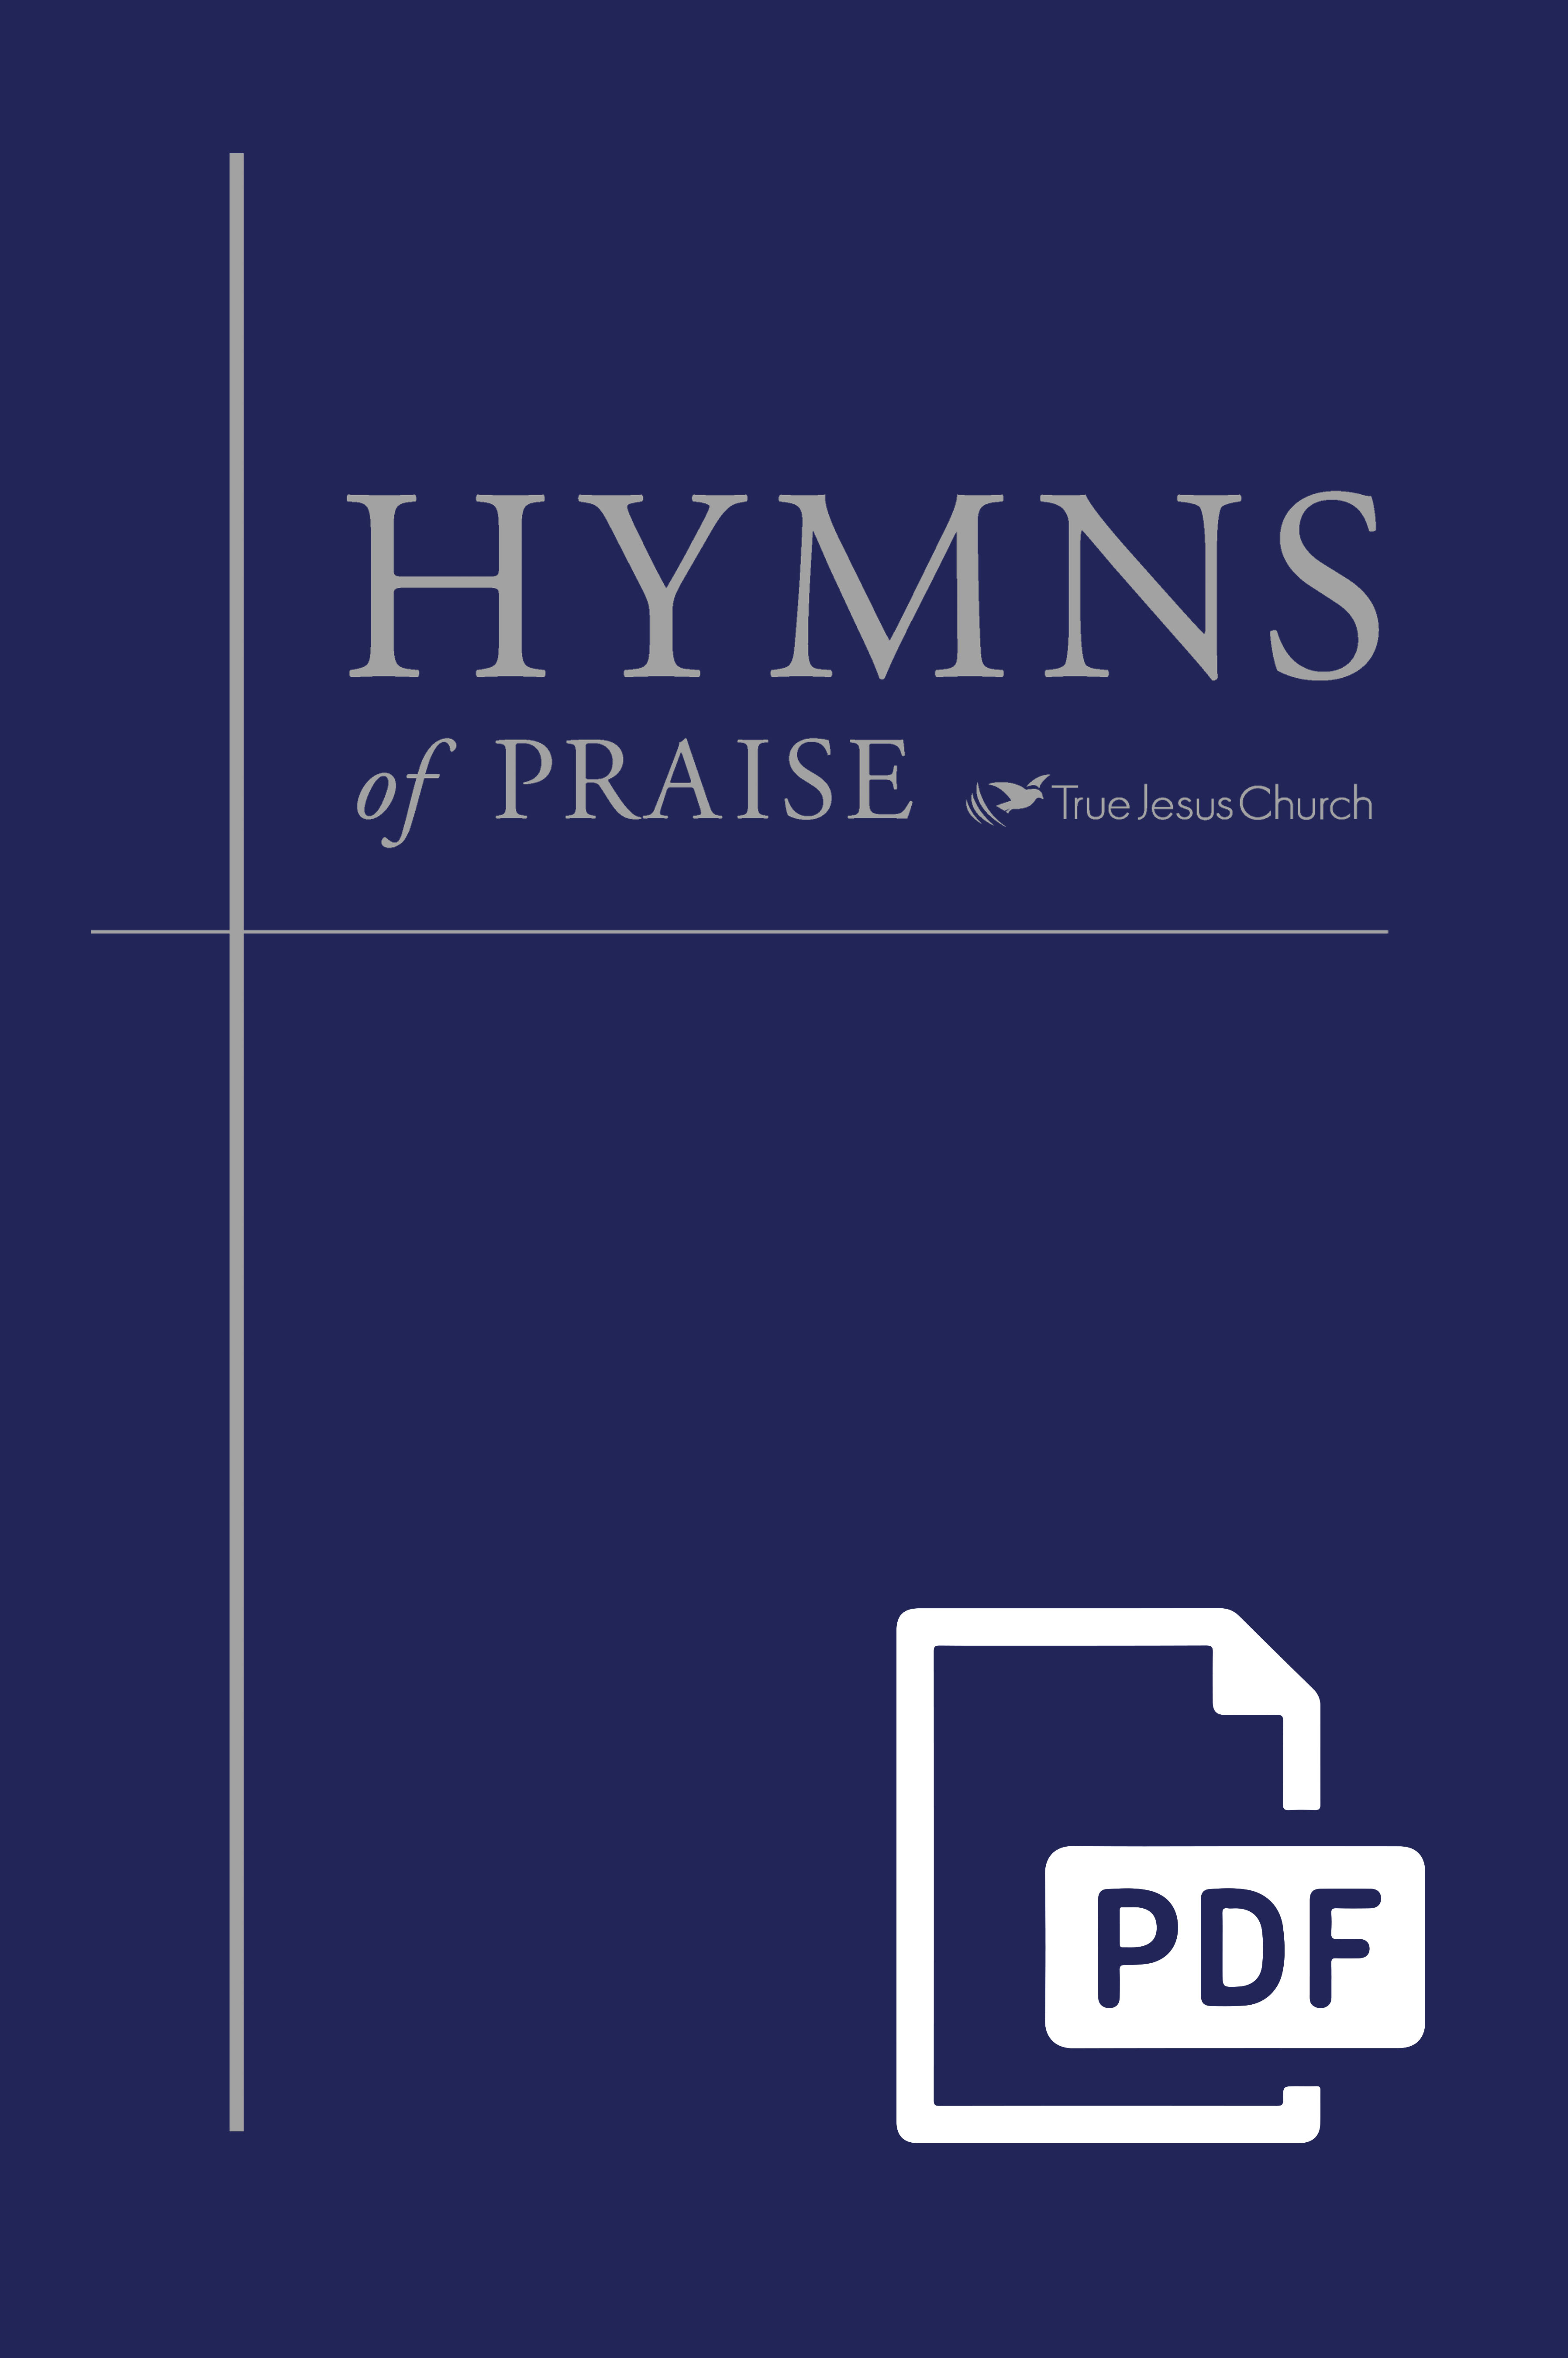 Hymns of Praise PDF version English  True Jesus Church